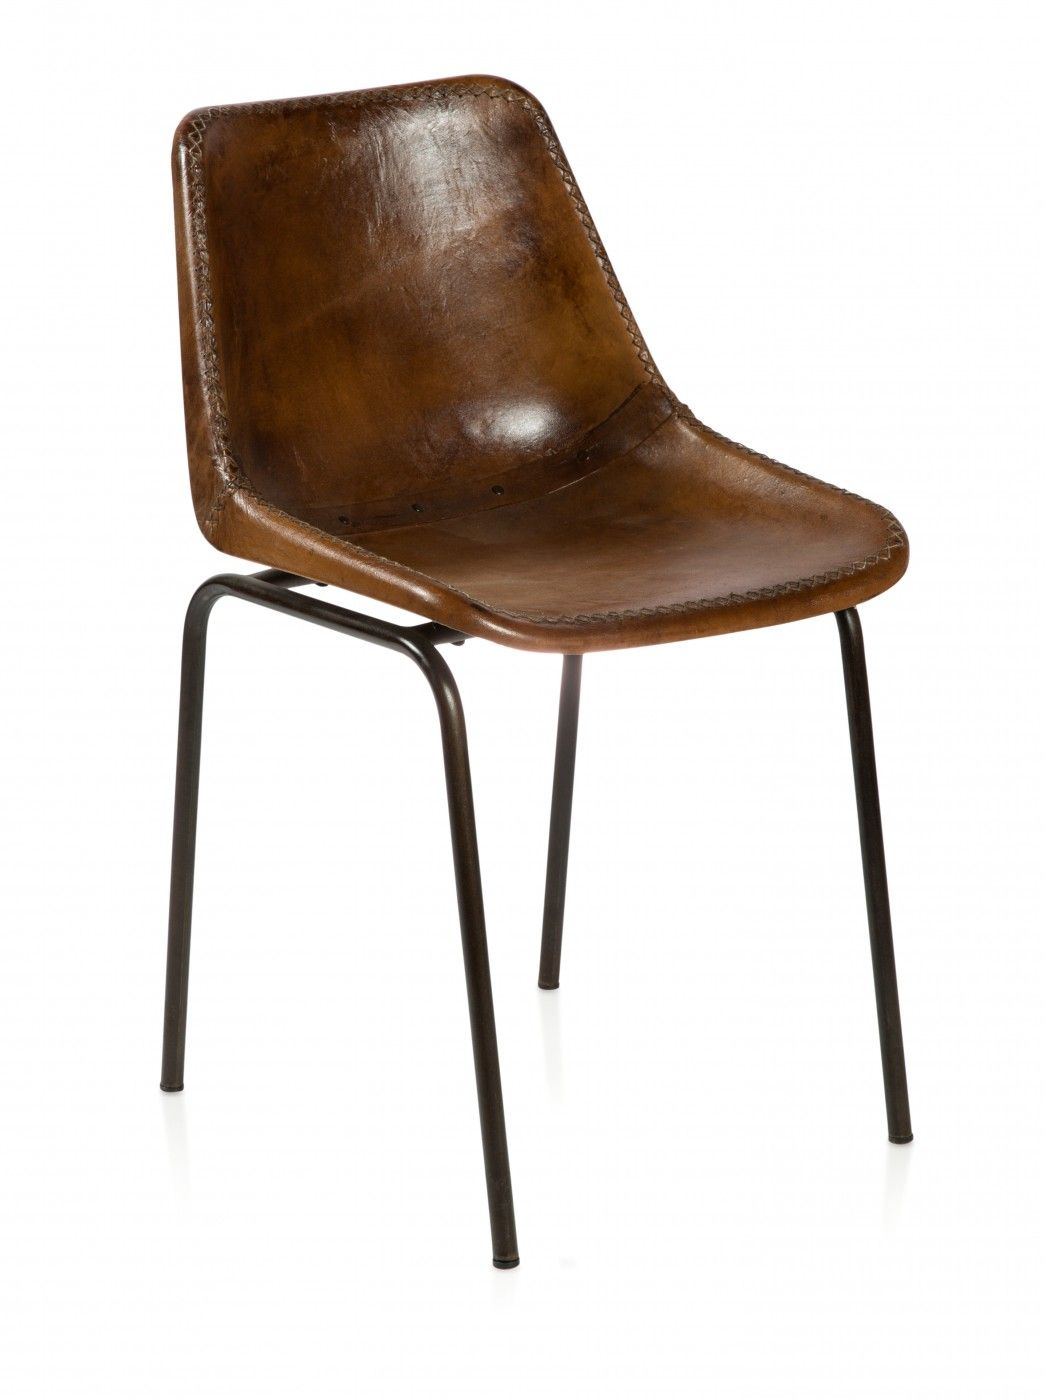 Brown Leather Dining Chair Leather Dining Chairs Dining Chairs For Sale Brown Leather Chairs